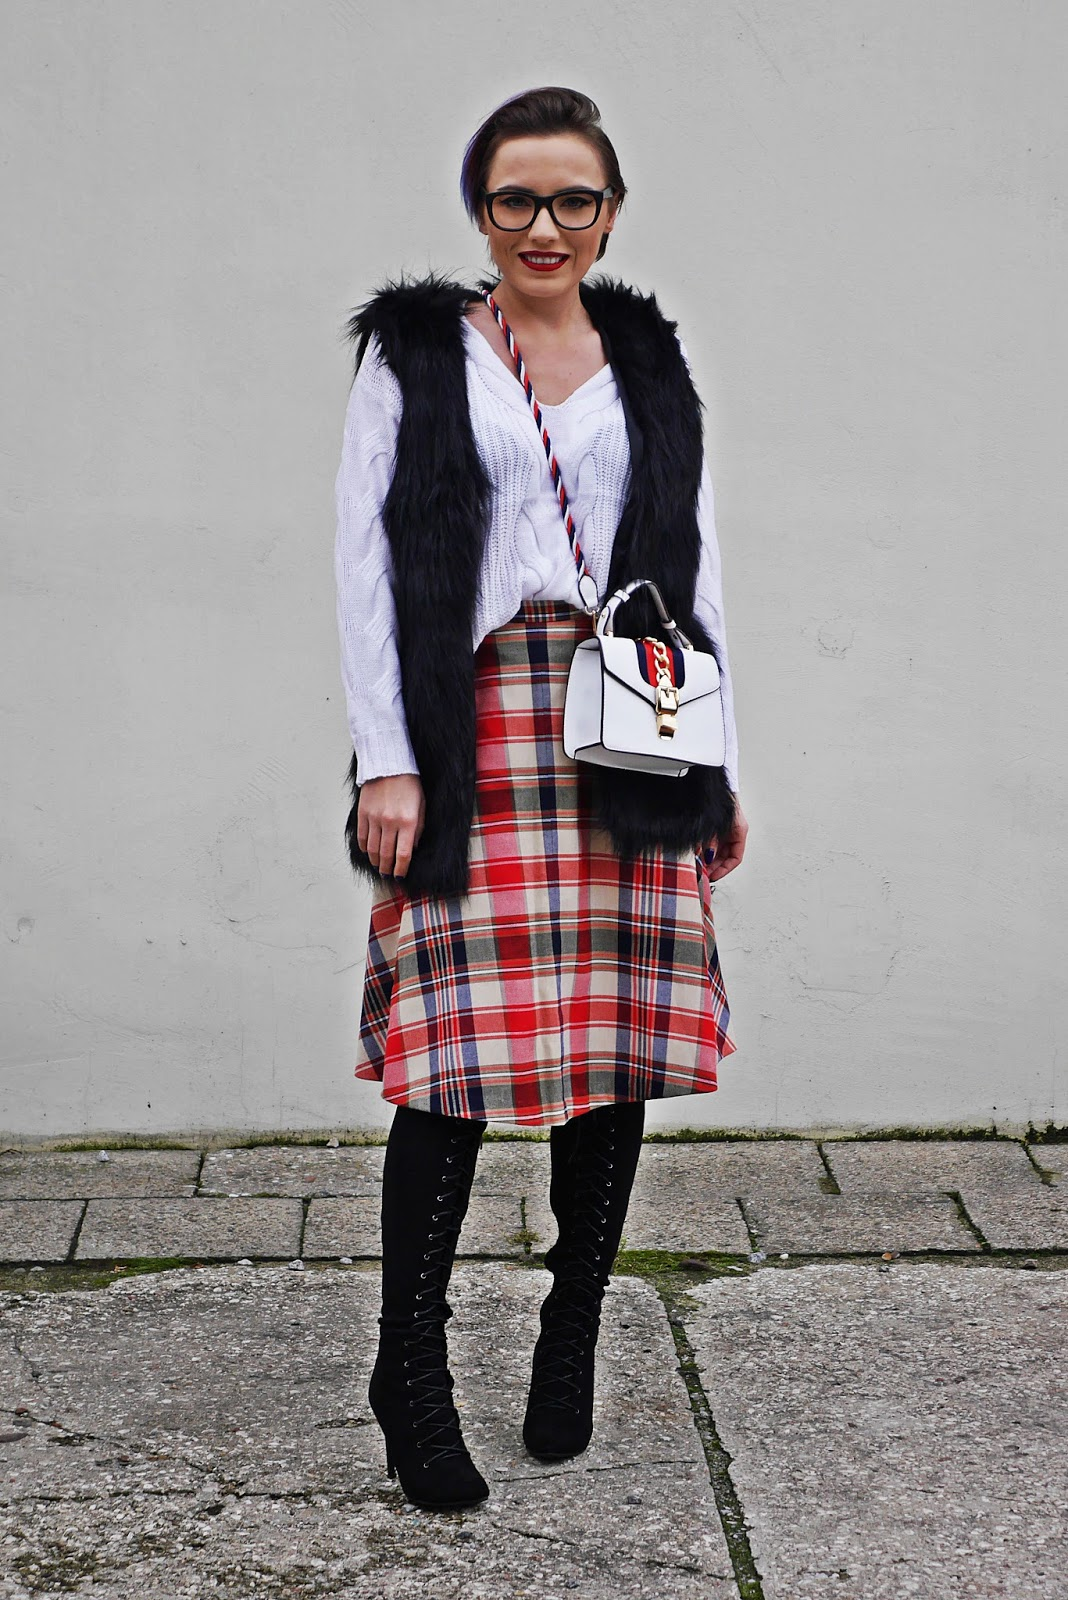 5_plaid_skirt_fur_waist_white_sweater_high_kenee_shoes_karyn_blog_modowy_151117